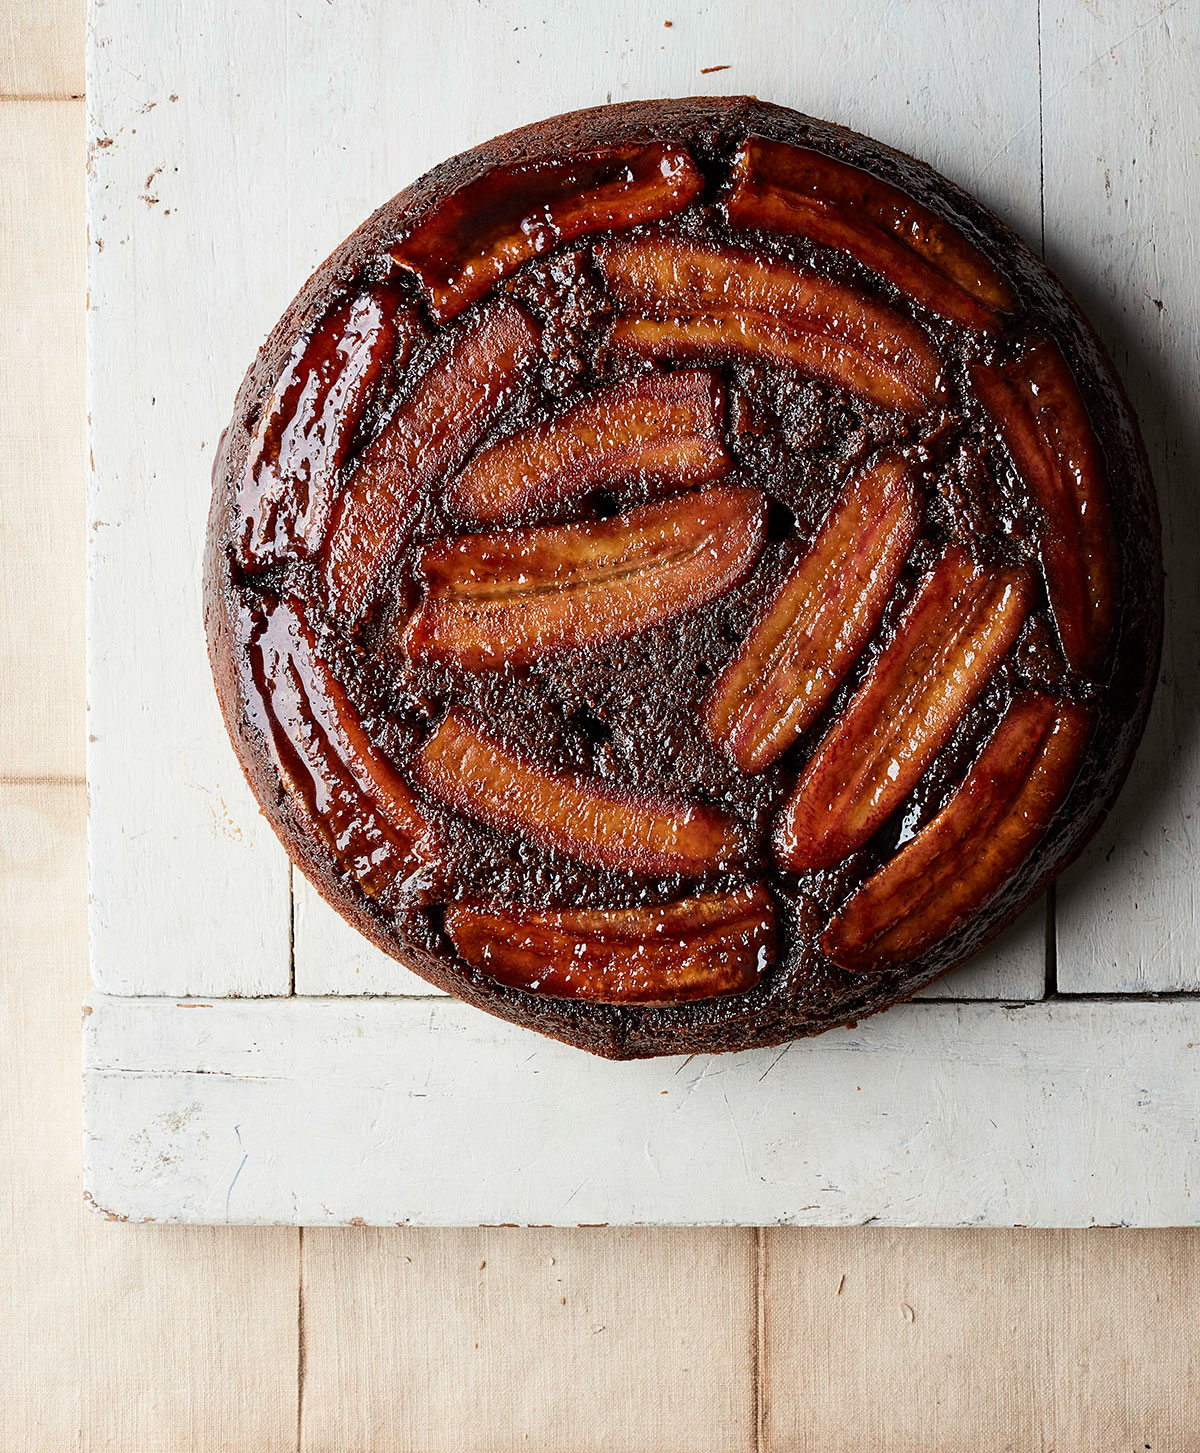 Bringing-It-Home_Banana-Cardamom-Upside-Down-Cake_Credit-Johnny-Miller.jpg